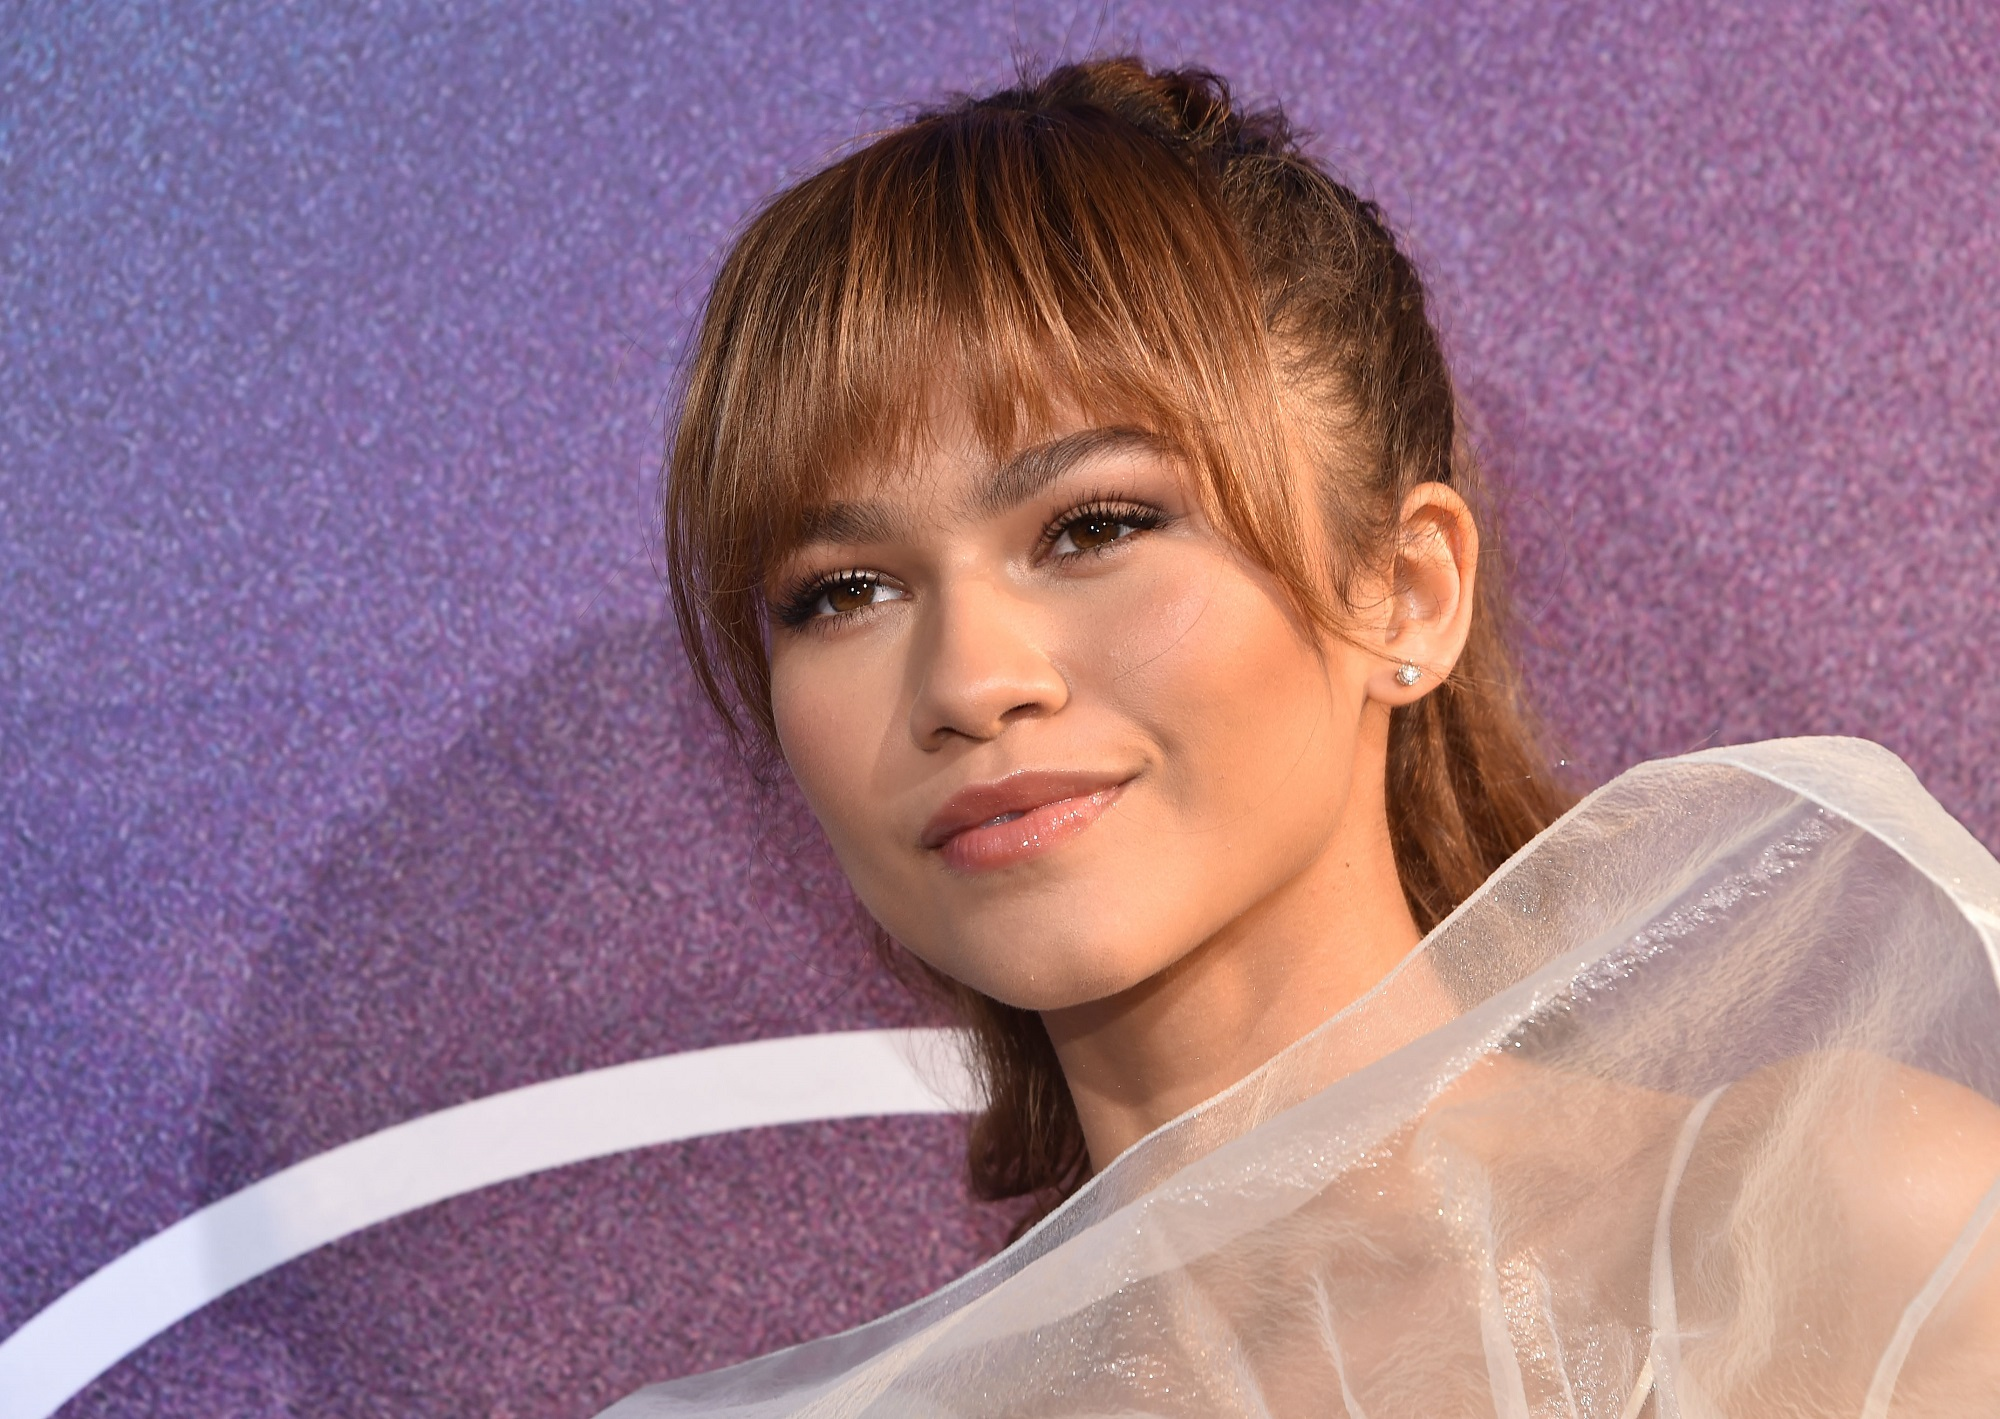 Zendaya attends the Los Angeles premiere of the HBO series 'Euphoria' at the Cinerama Dome Theatre in Hollywood on June 4, 2019.